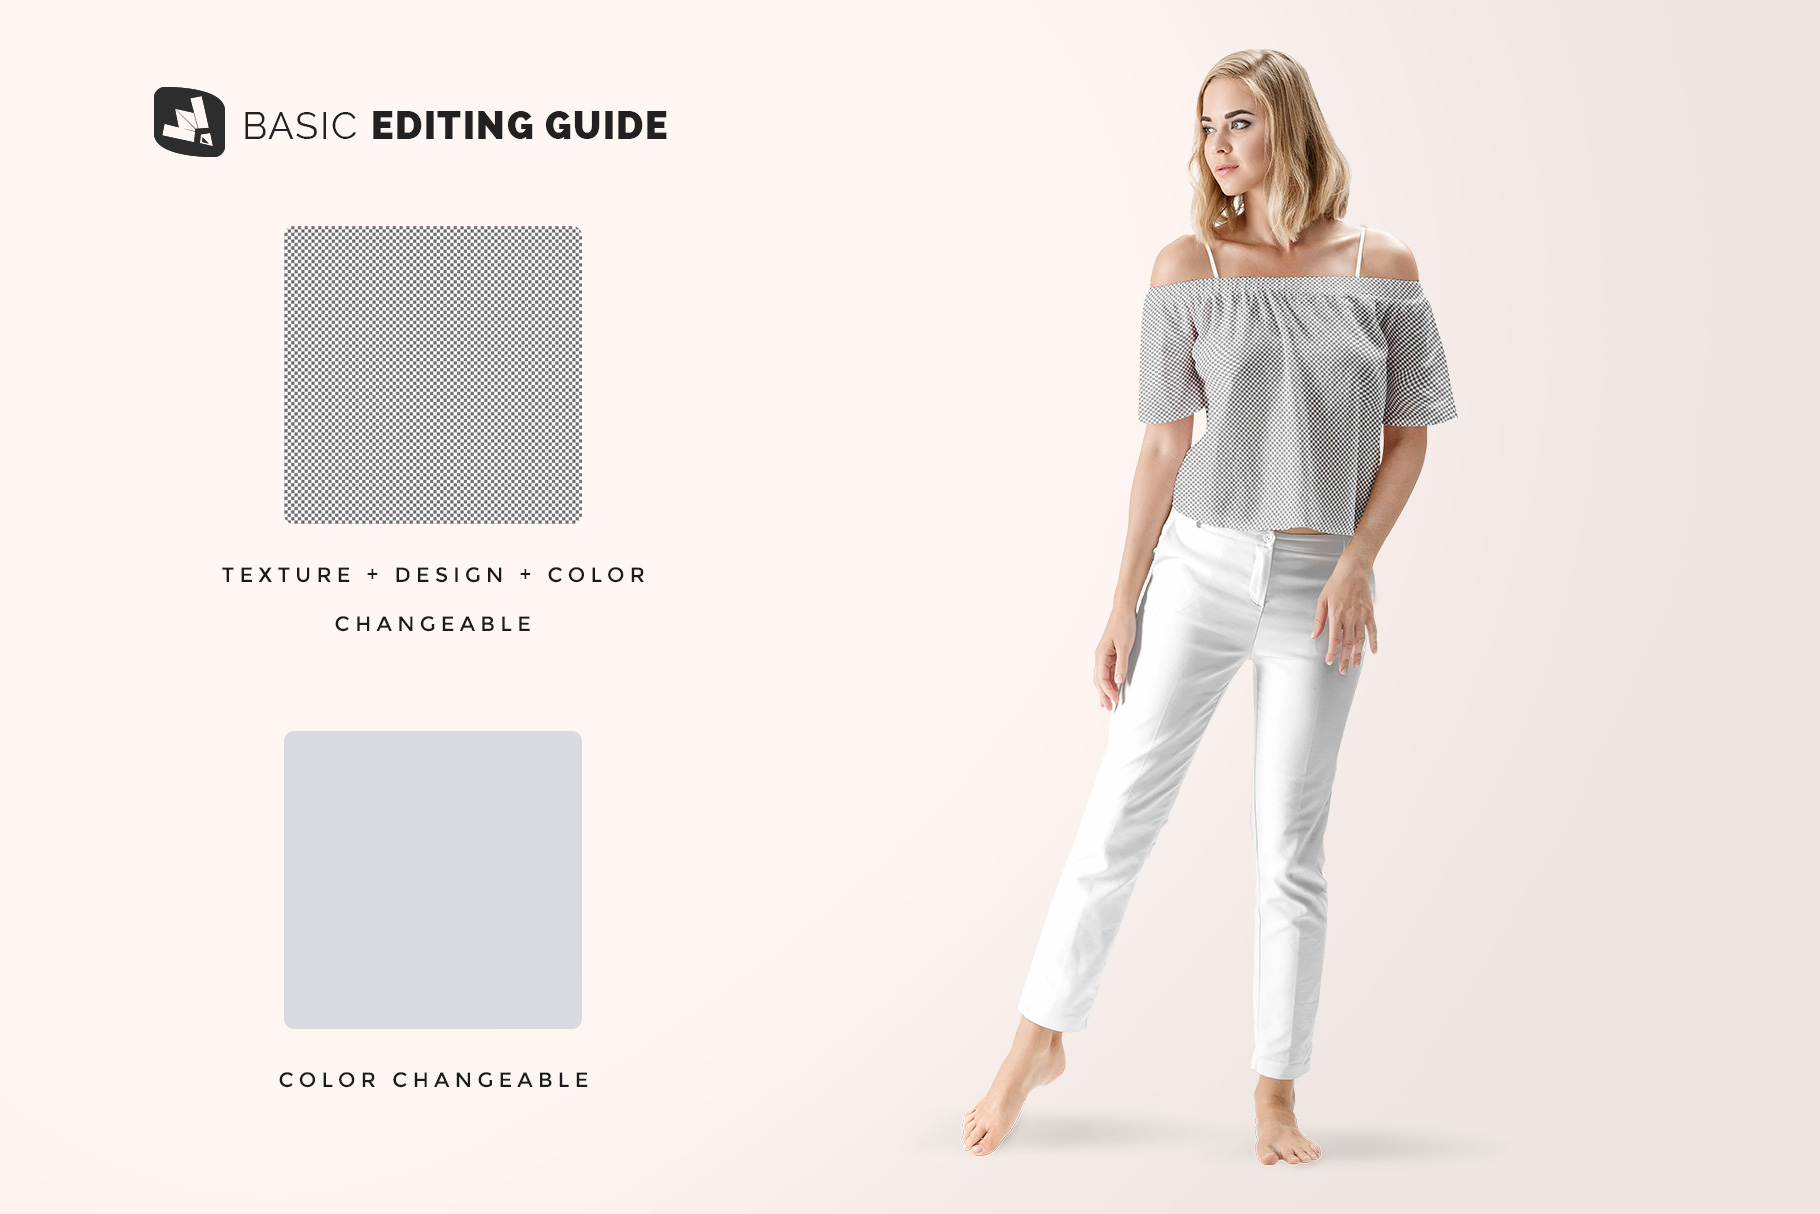 editability of the summer outfit mockup with female model